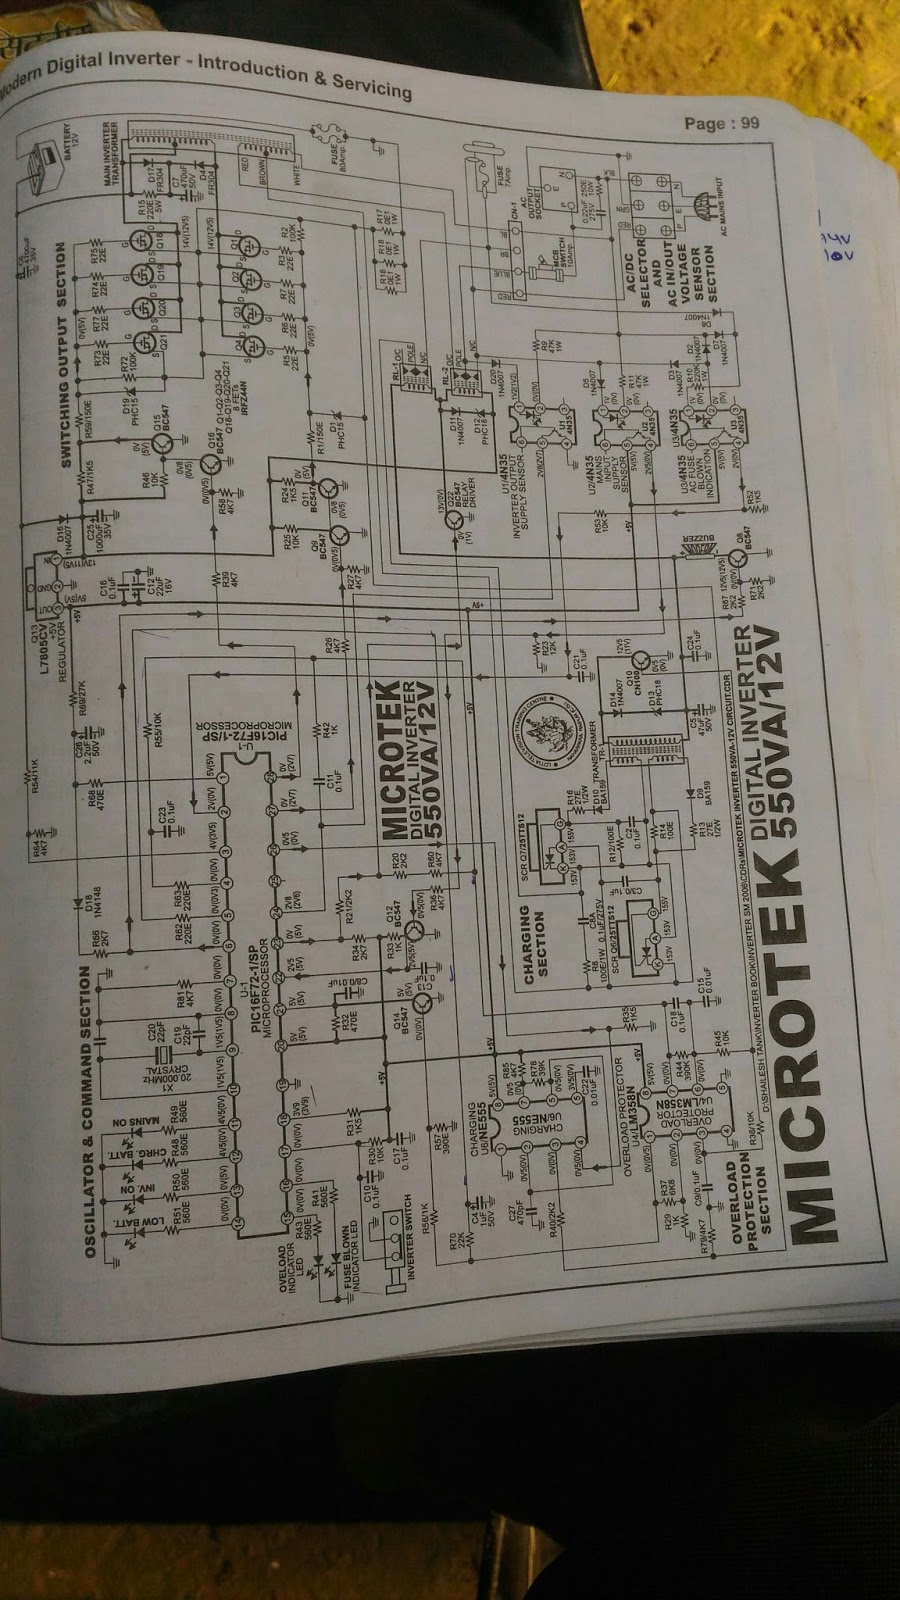 Nagaland genius electronics microtek 550va inverter circuit diagram microtek 550va inverter circuit diagram asfbconference2016 Images